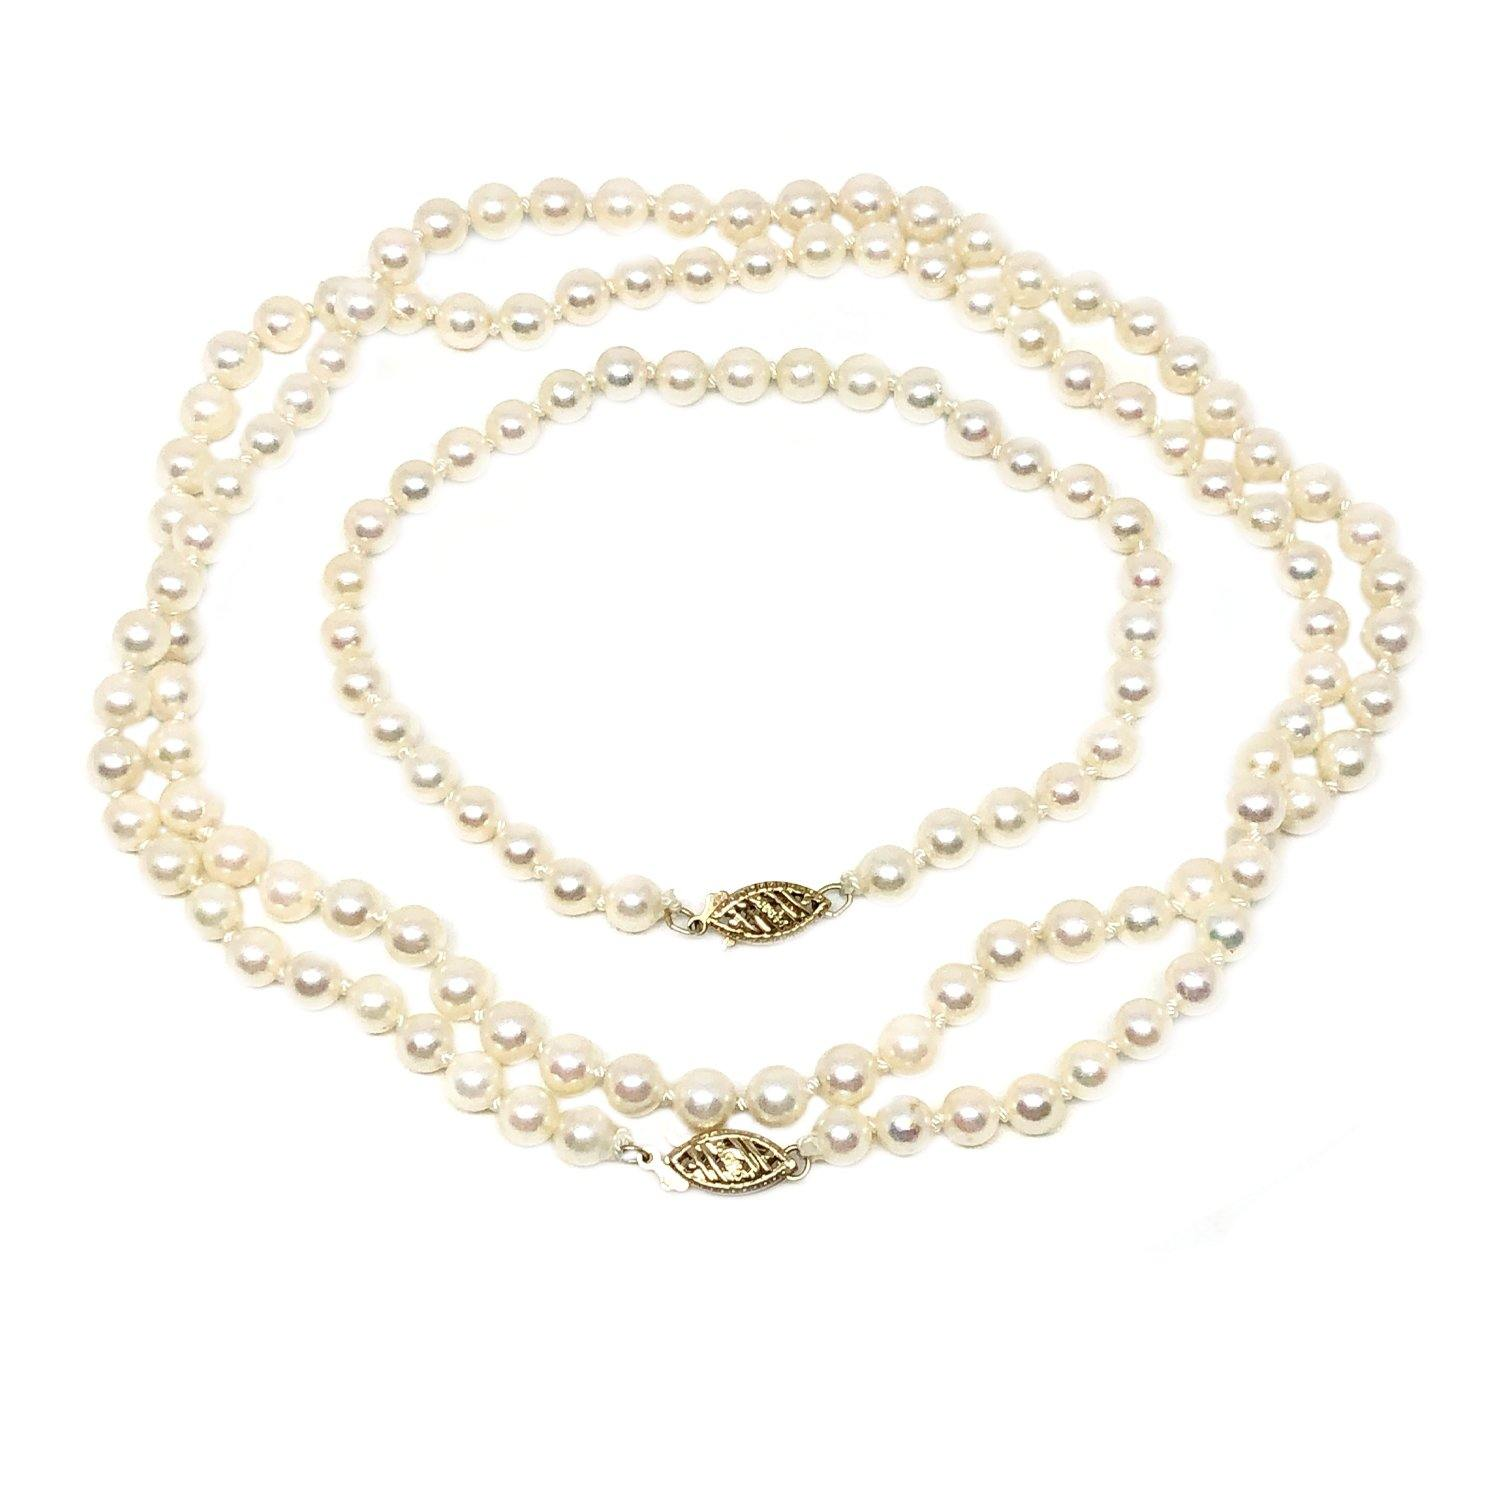 Set Japanese Saltwater Cultured Akoya Pearl Necklace & Bracelet - 14K Yellow Gold 26 Inch